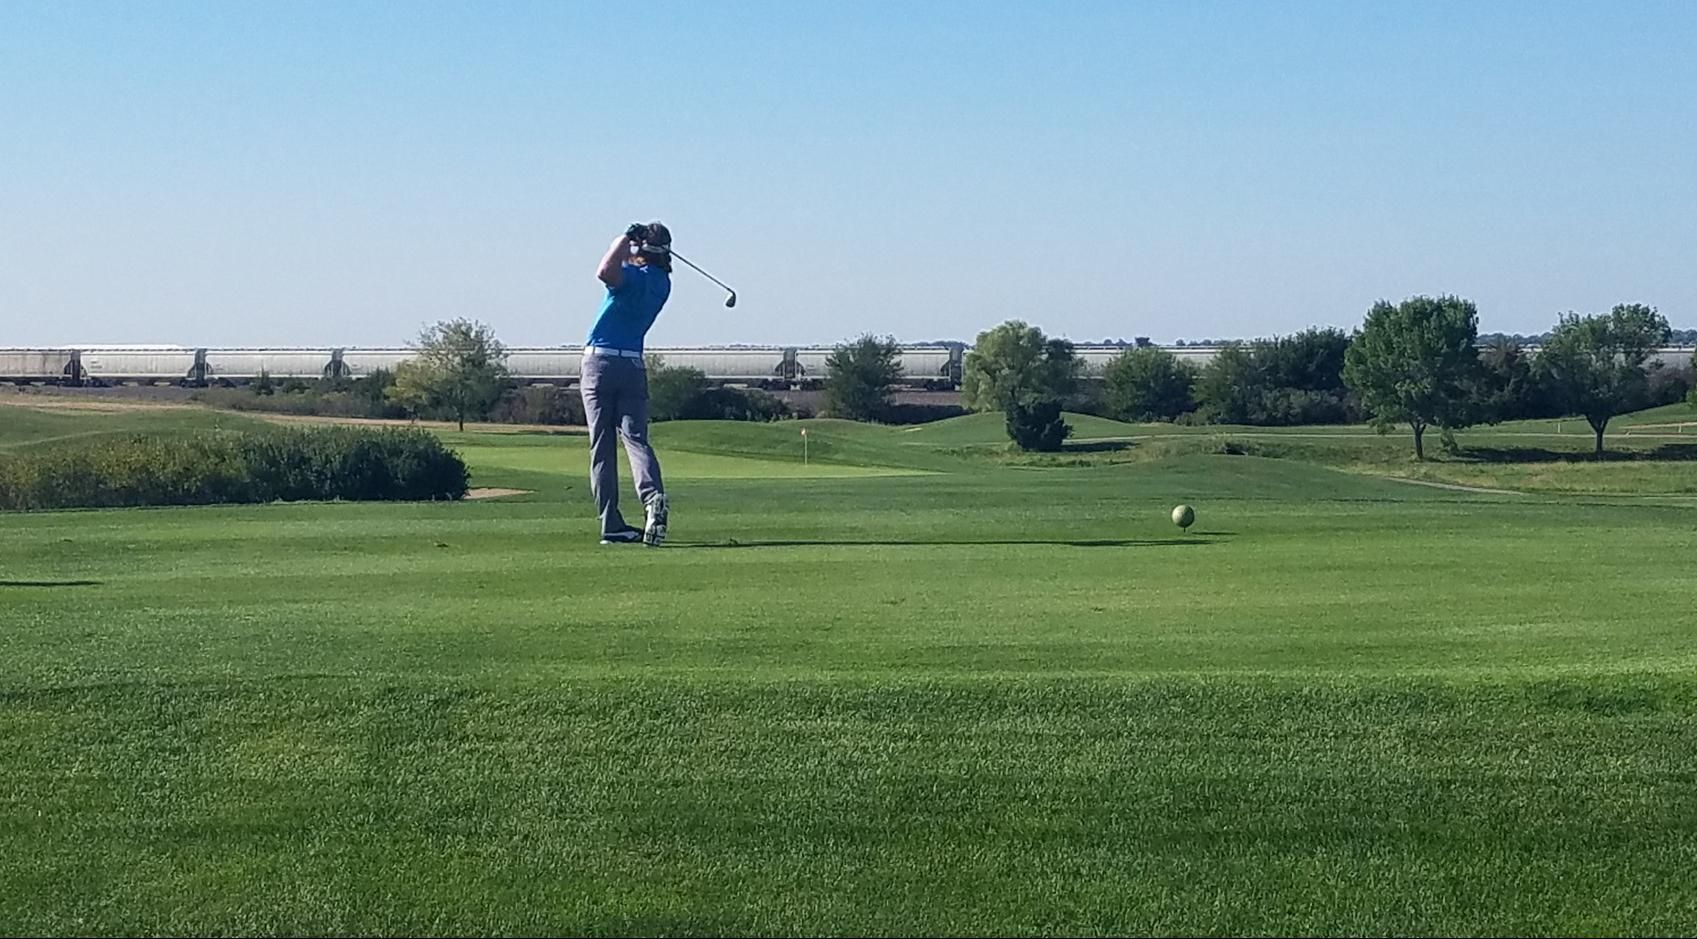 Lakers Bounce Back with season low on day 2 of Blue River Classic